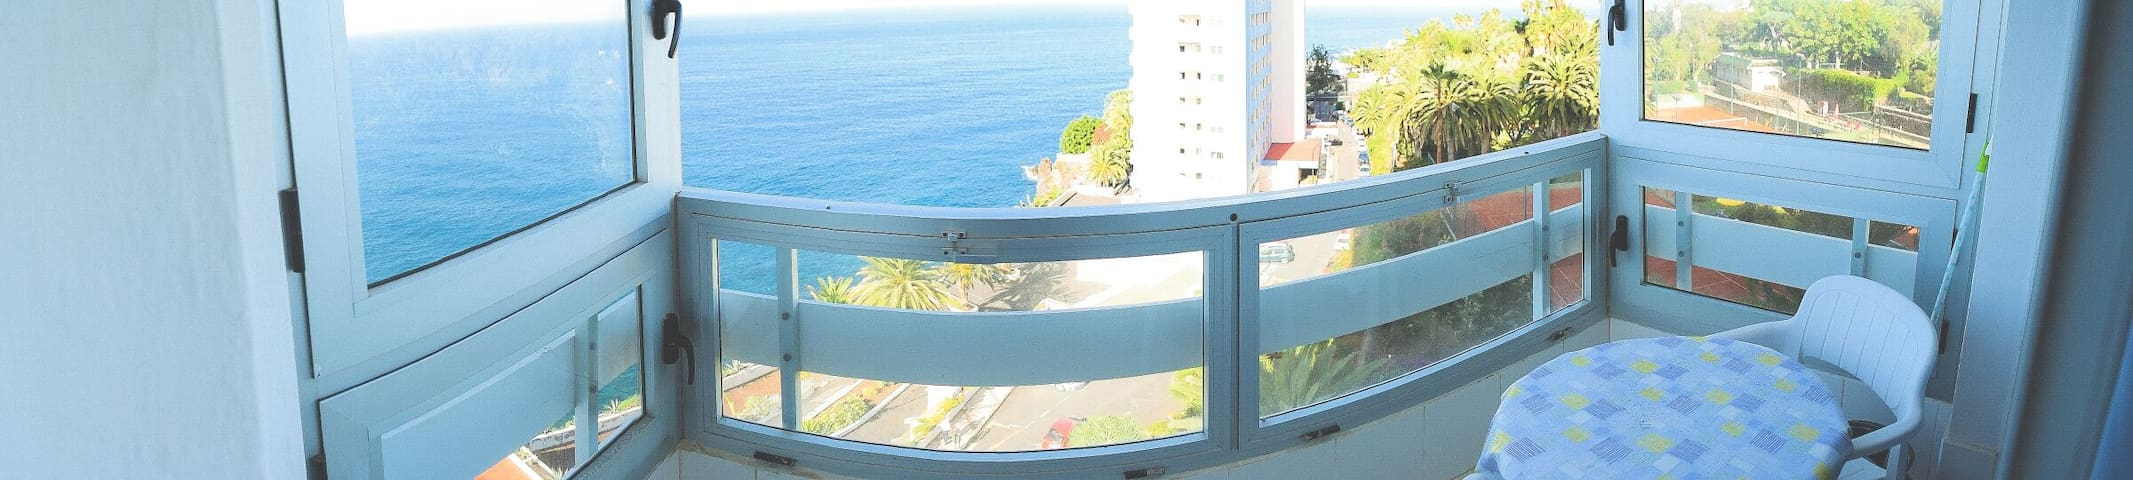 ★ Amazing Ocean View Apartment ★ - Puerto de la Cruz